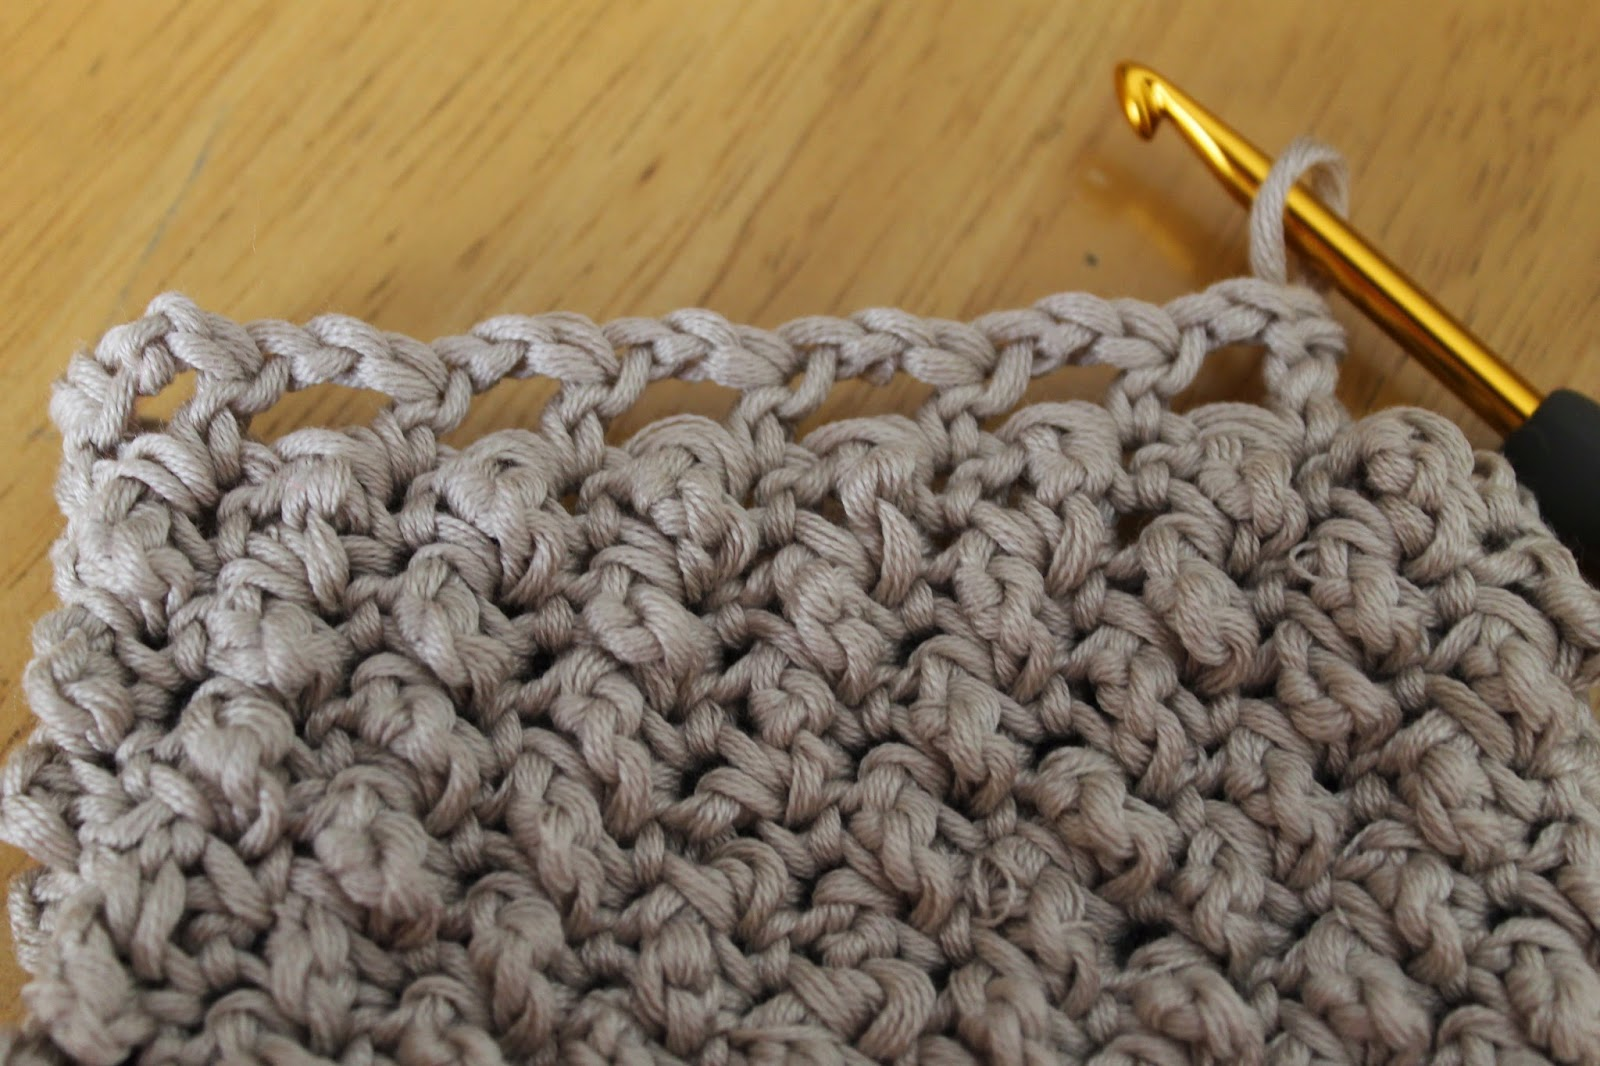 Da's Crochet Connection: Knotted Drawstring Bag